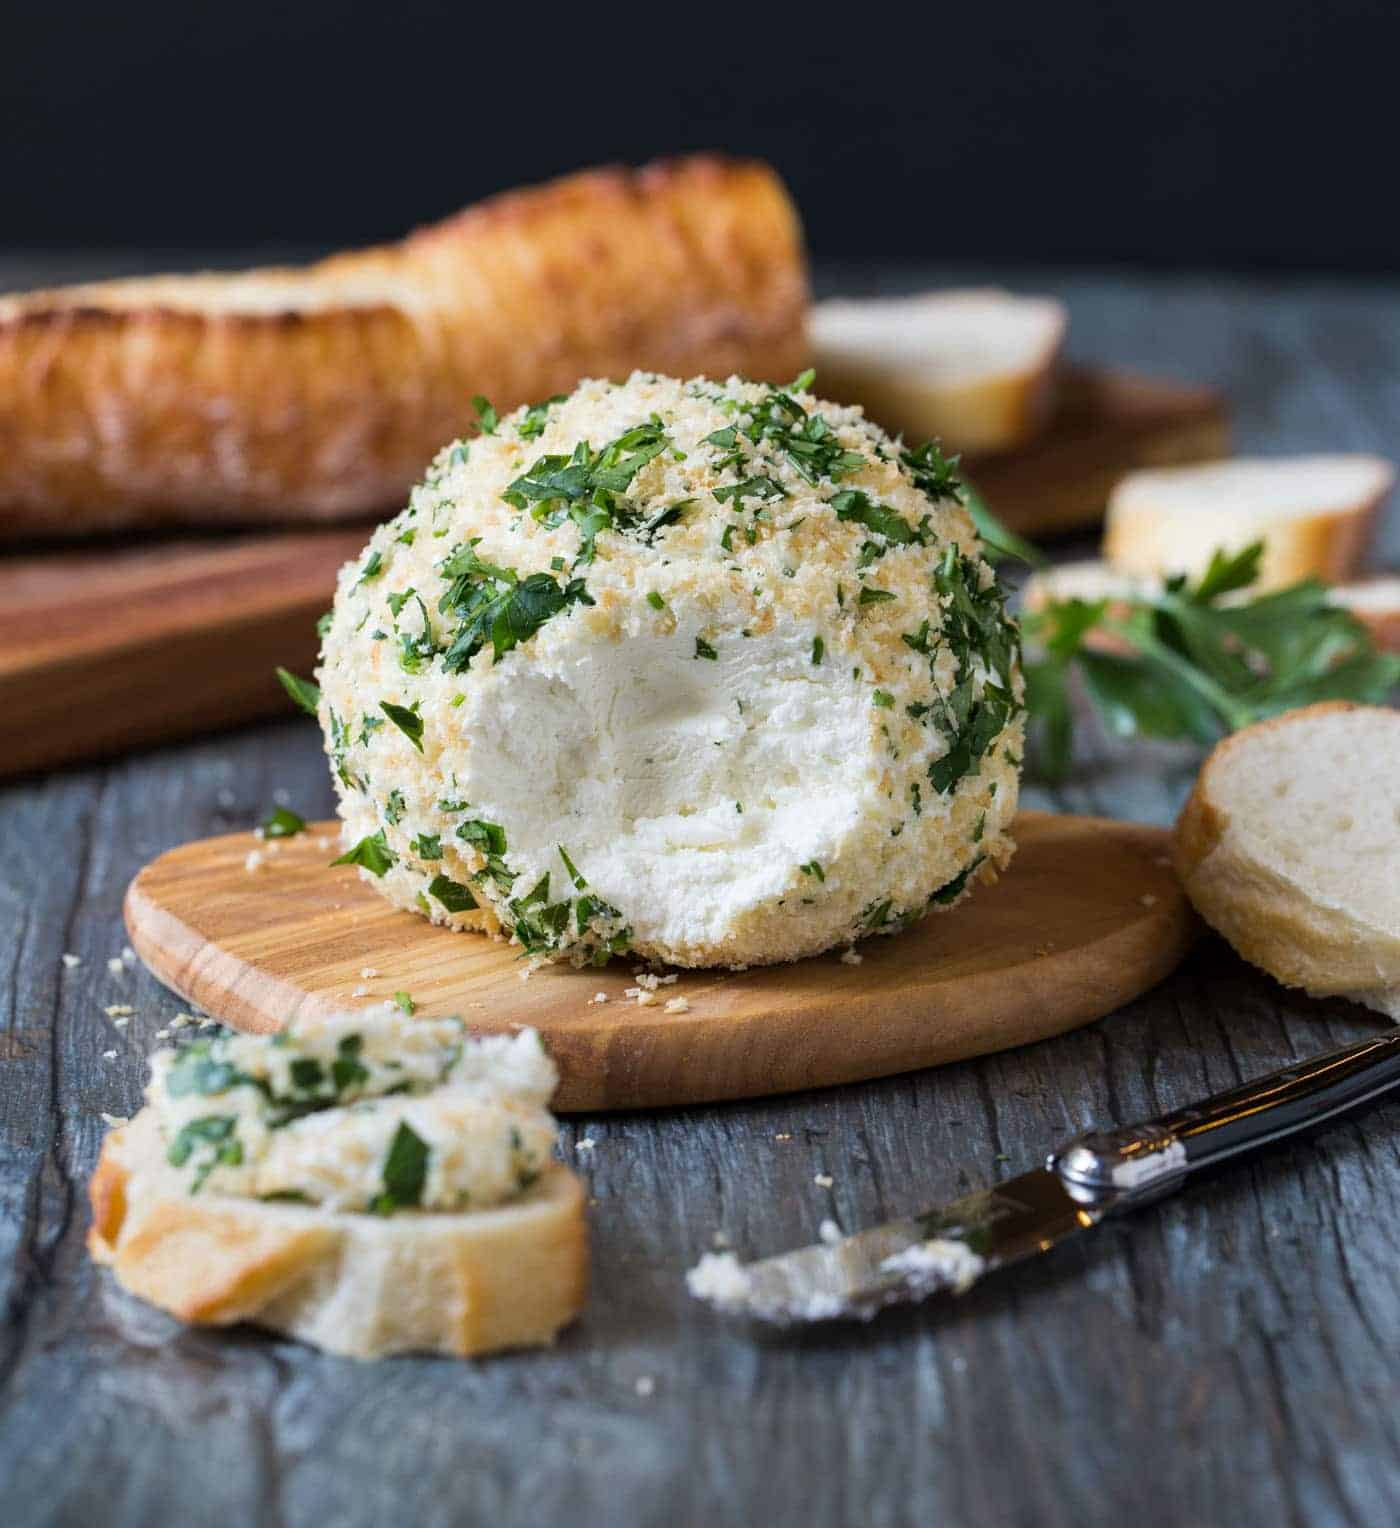 This Parsley and Panko Goat Cheese Ball is a great appetizer for a party!